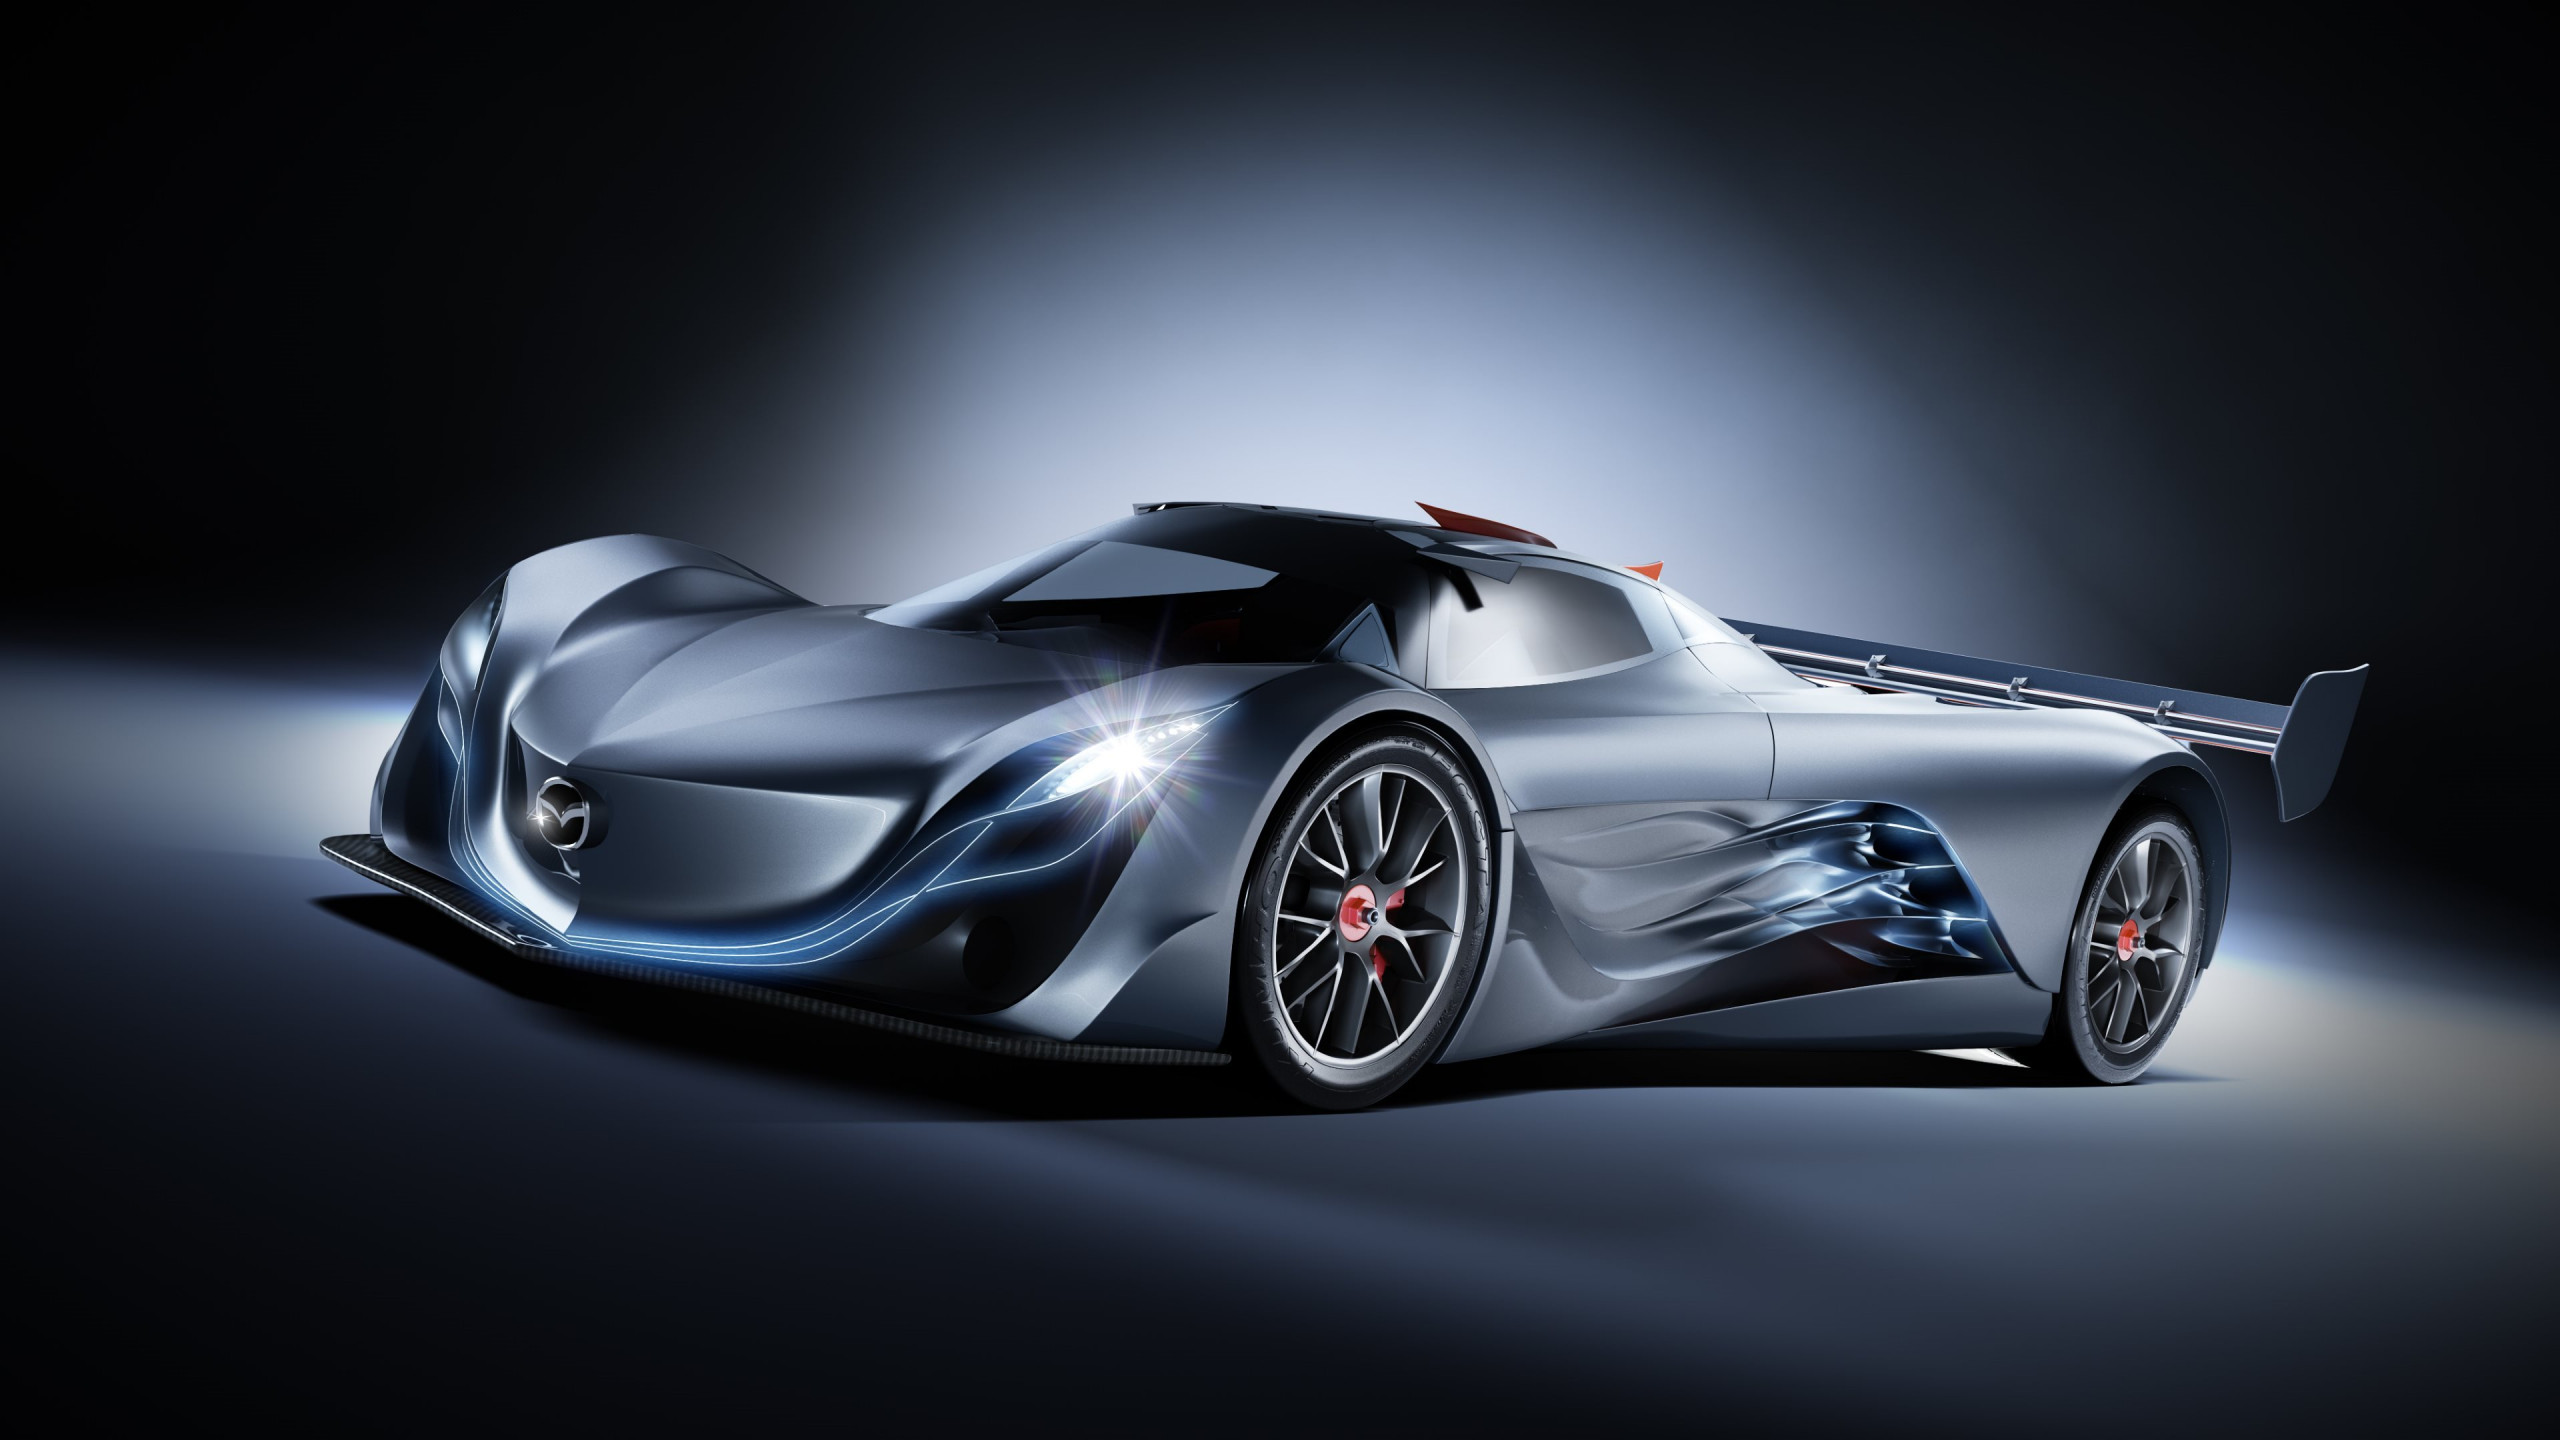 Mazda Furai wallpaper 2560x1440